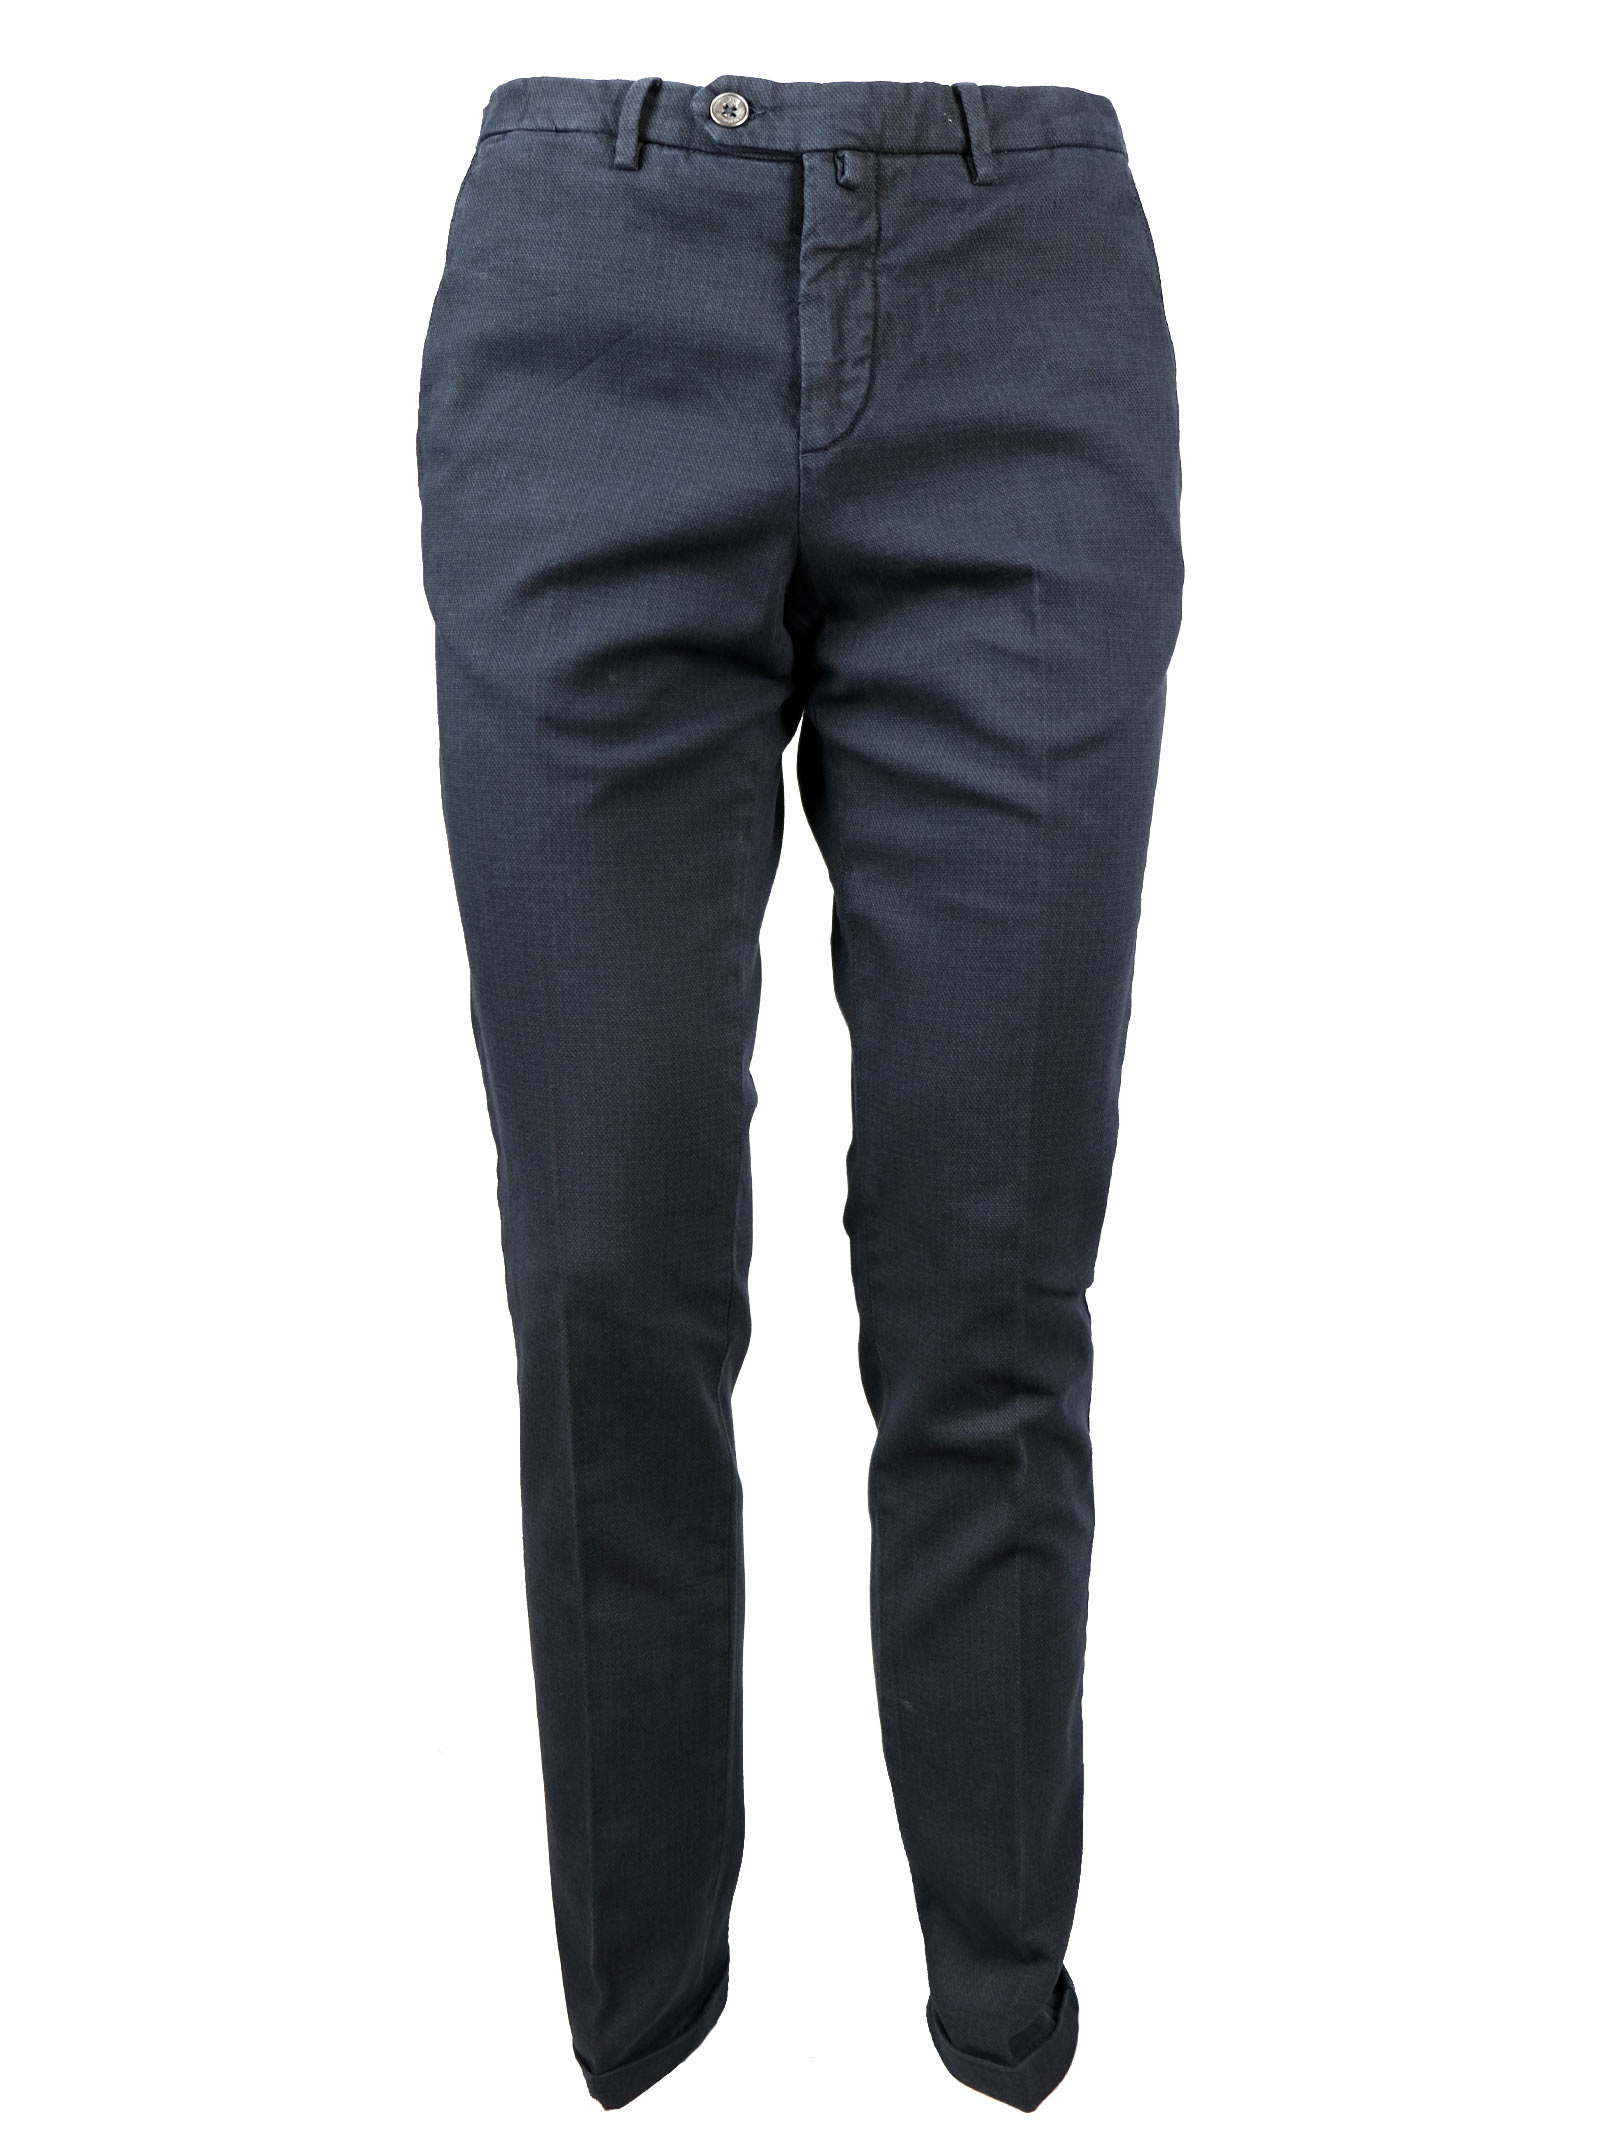 B700 | Trousers | MH700 803981